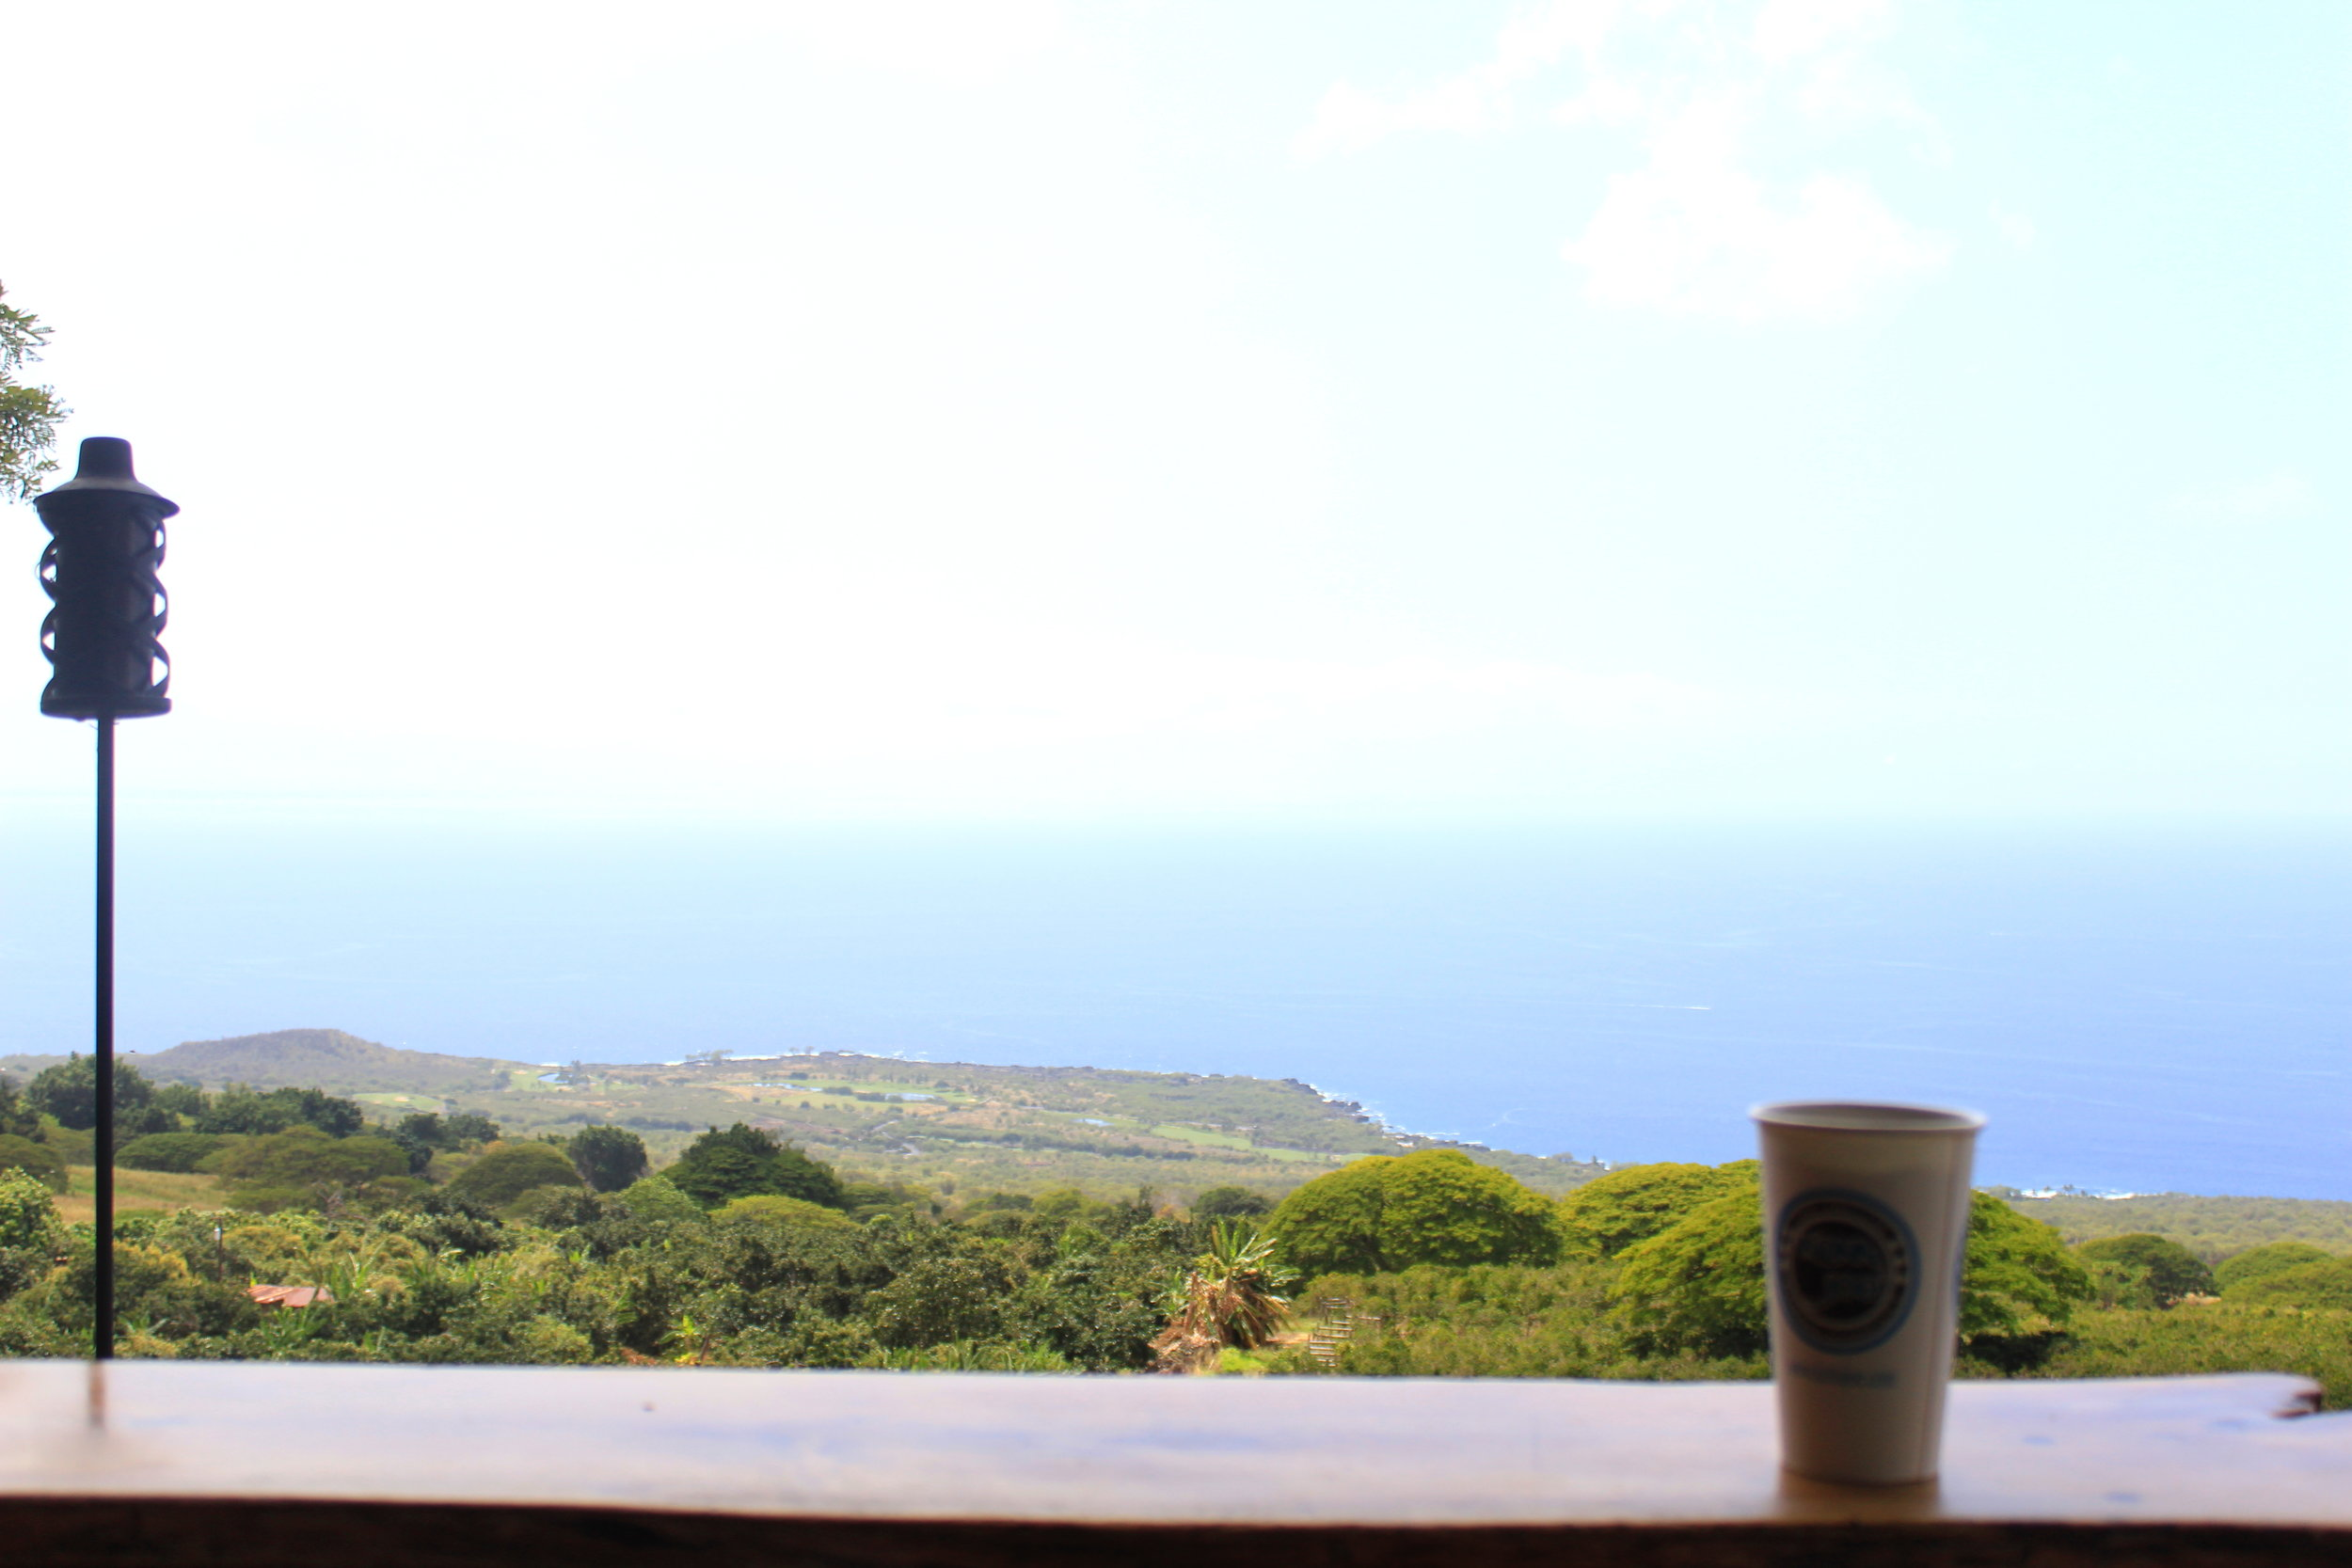 Kona Joe Coffee, Big Island, Hawaii